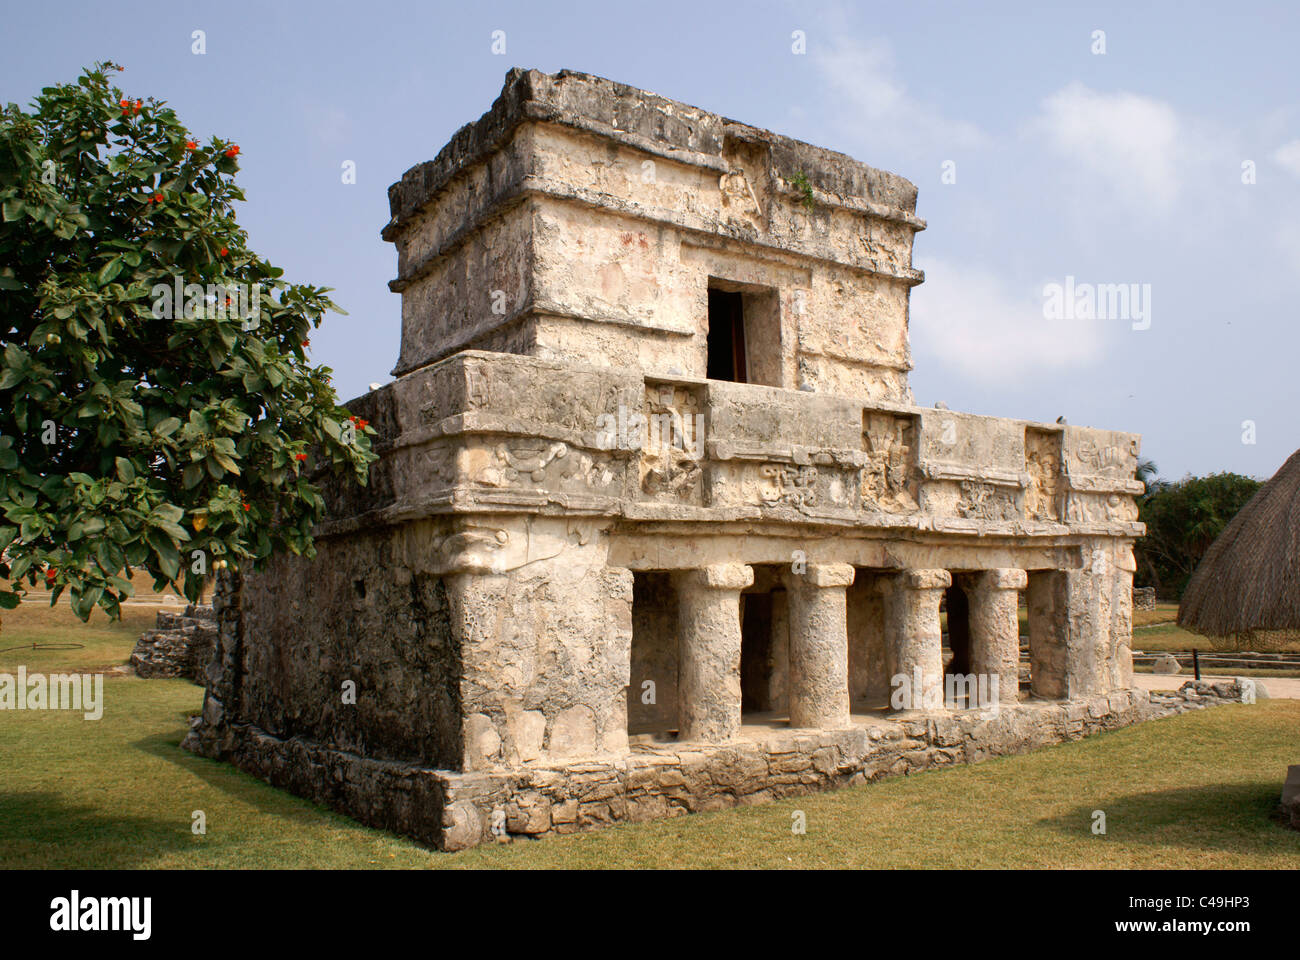 Temple of the Frescos at the Mayan ruins of Tulum on the Riviera Maya, Quintana Roo, Mexico - Stock Image